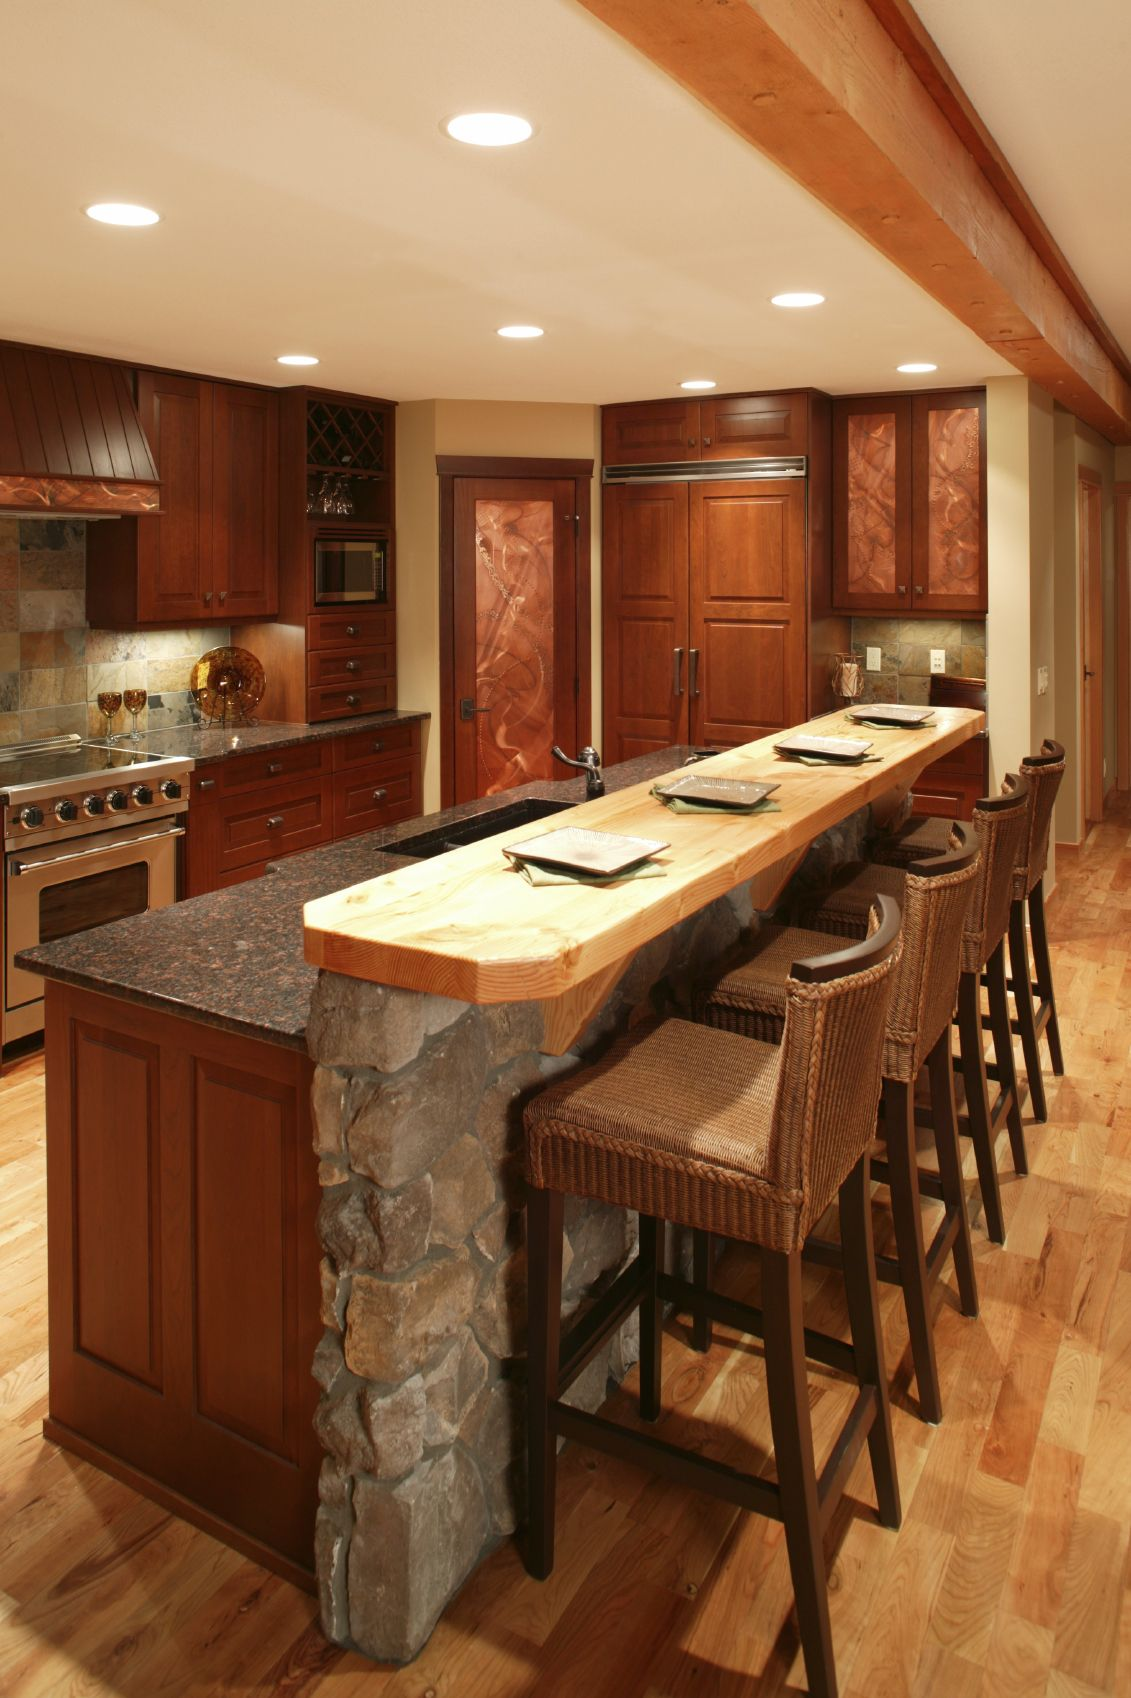 399 Kitchen Island Ideas 2018 Wood Paneling Stone